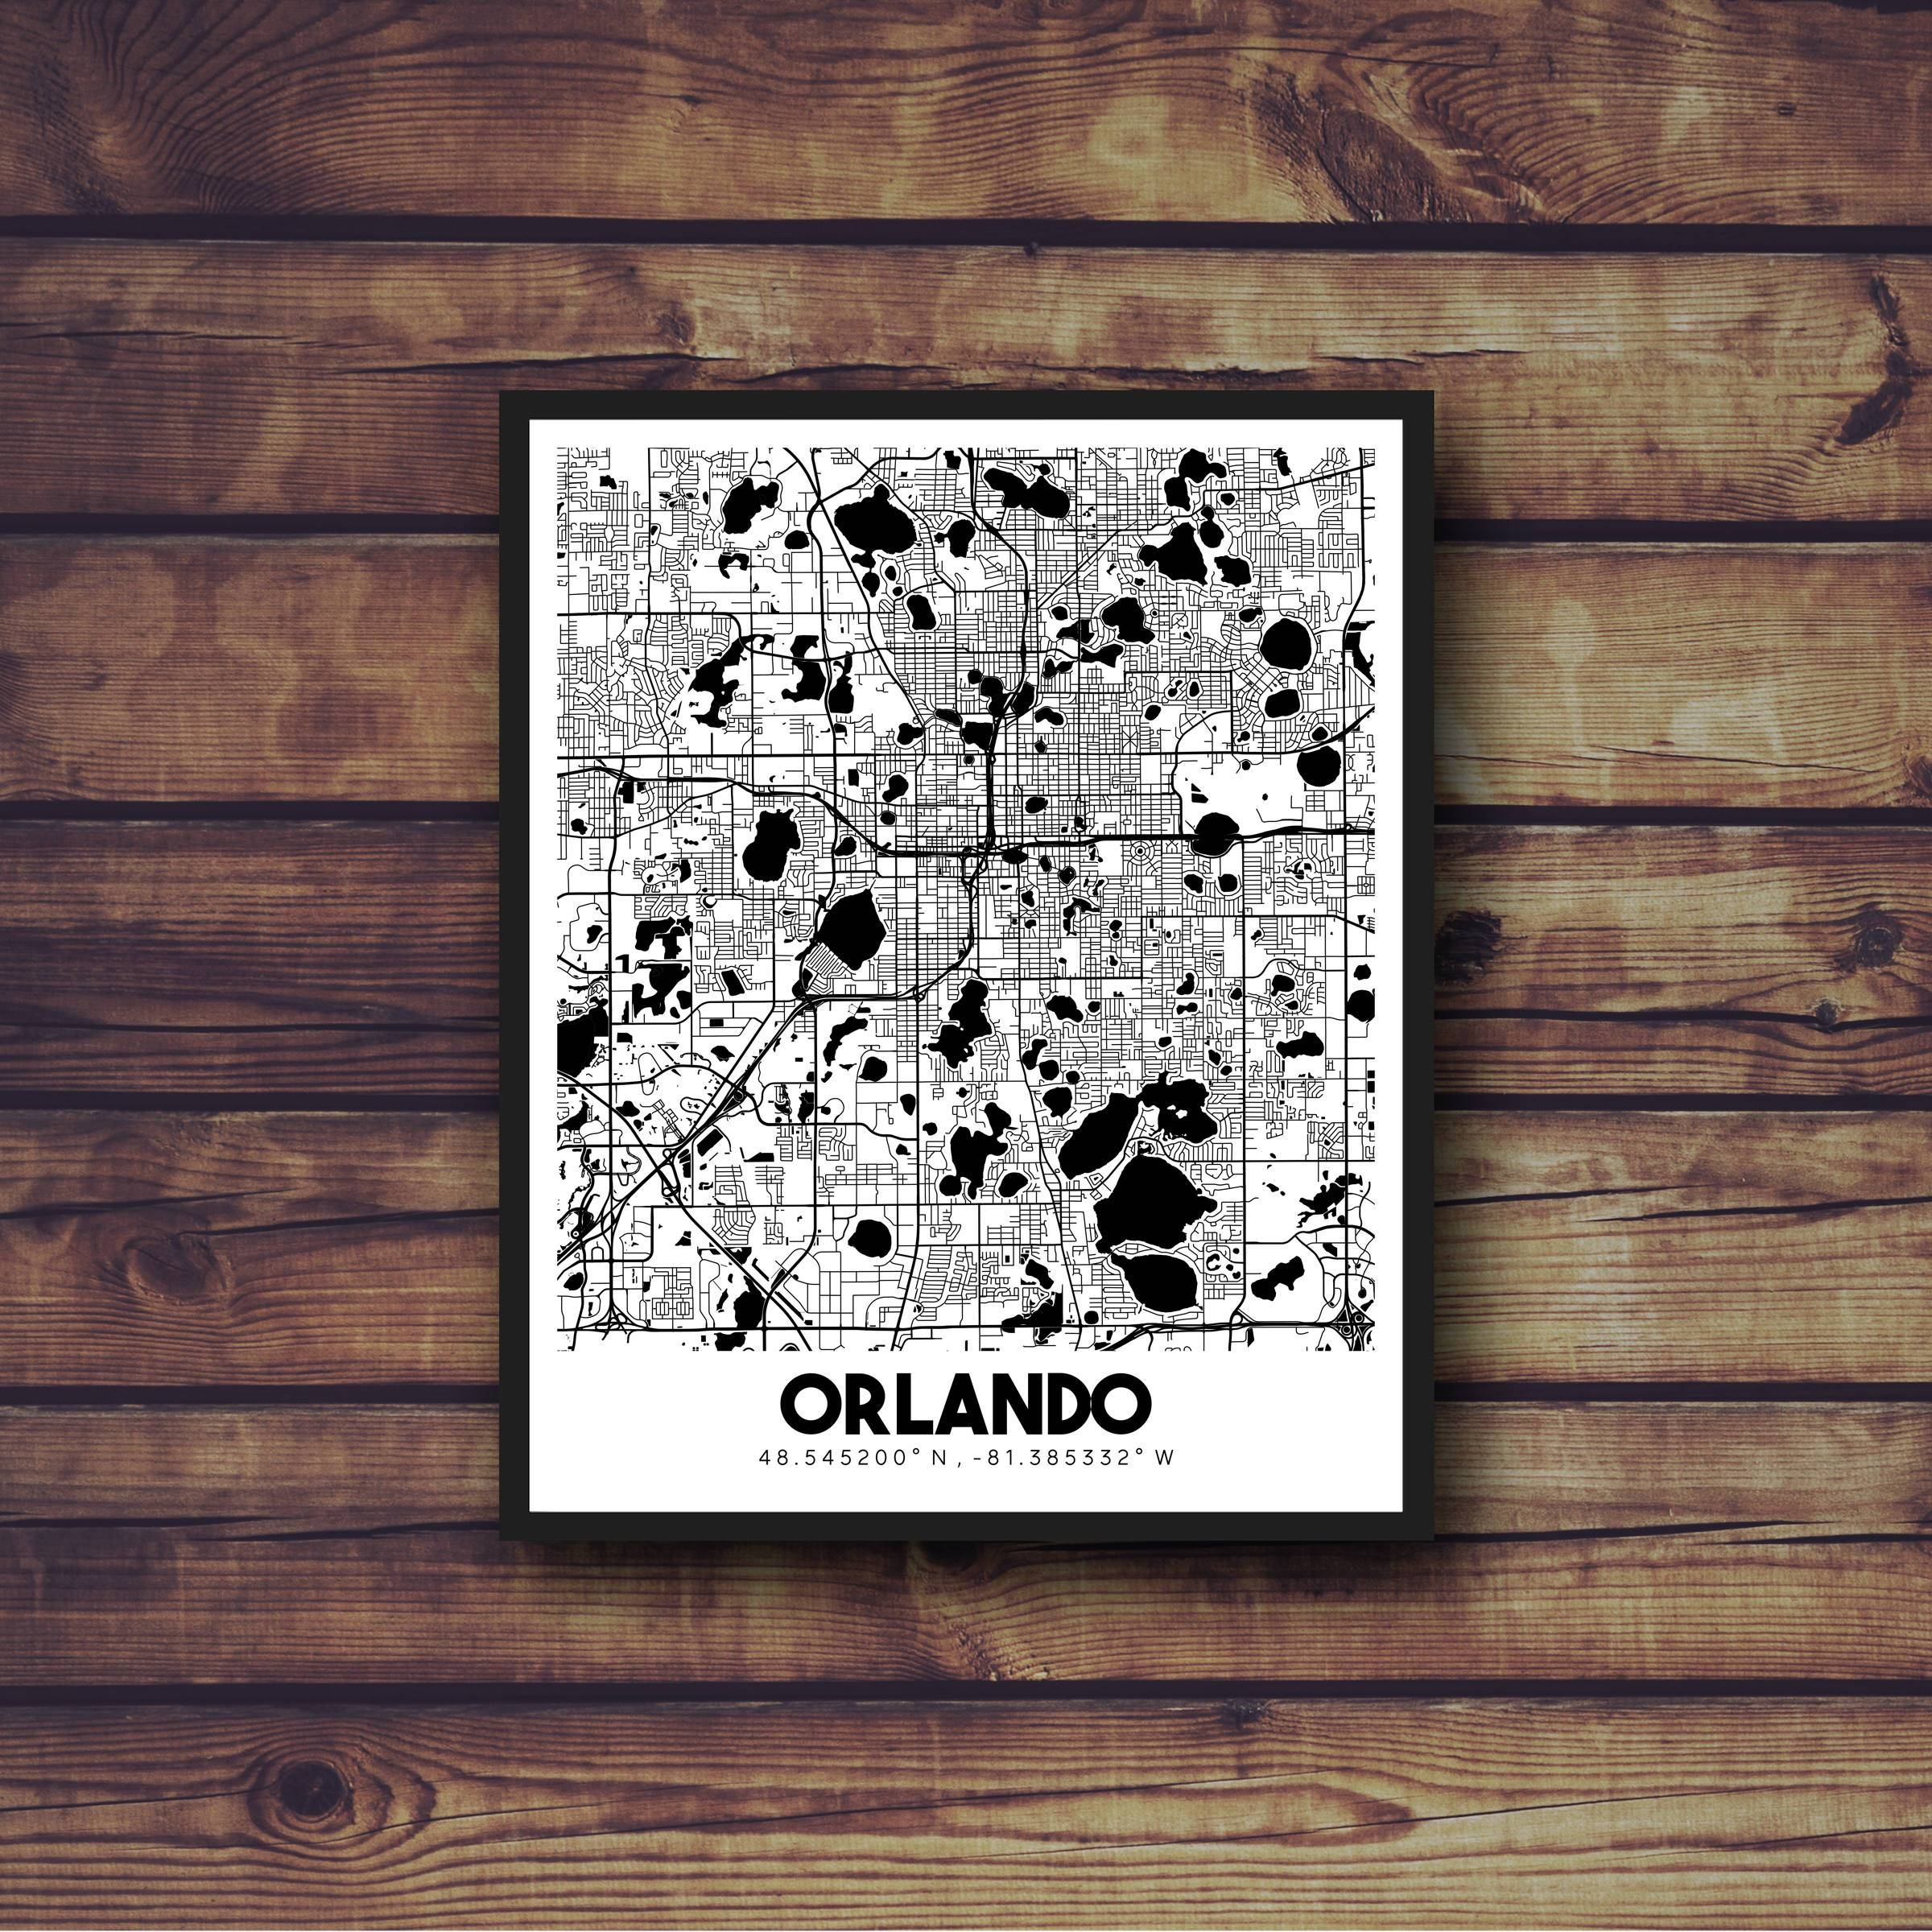 Orlando Florida Downtown Street Map Orlando Florida City Map Within Most Up To Date Florida Map Wall Art (View 12 of 20)